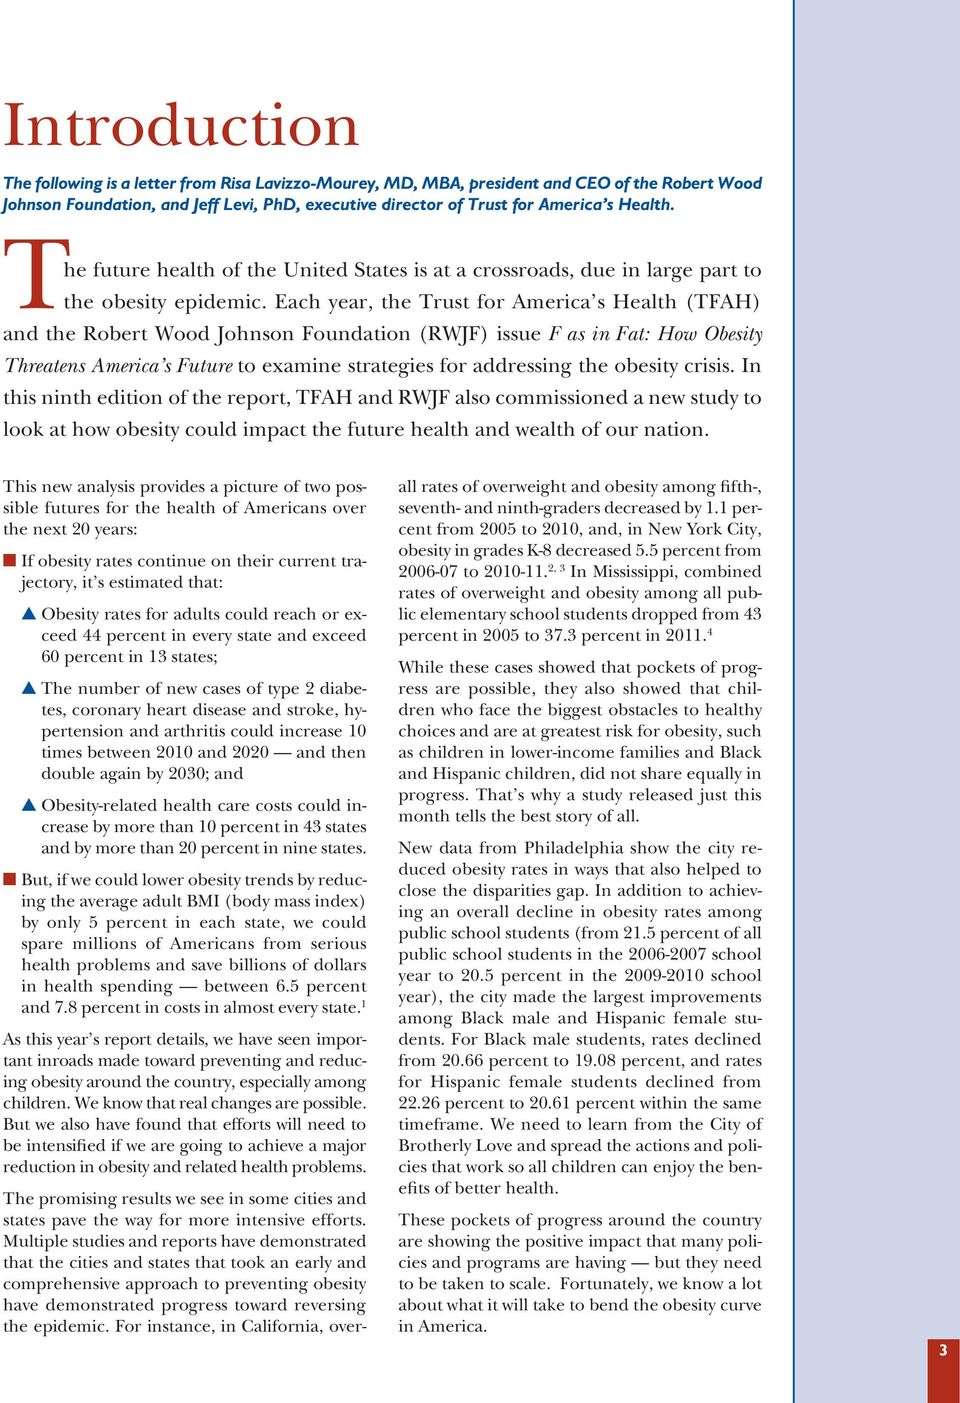 Each year, the Trust for America s Health (TFAH) and the Robert Wood Johnson Foundation (RWJF) issue F as in Fat: How Obesity Threatens America s Future to examine strategies for addressing the